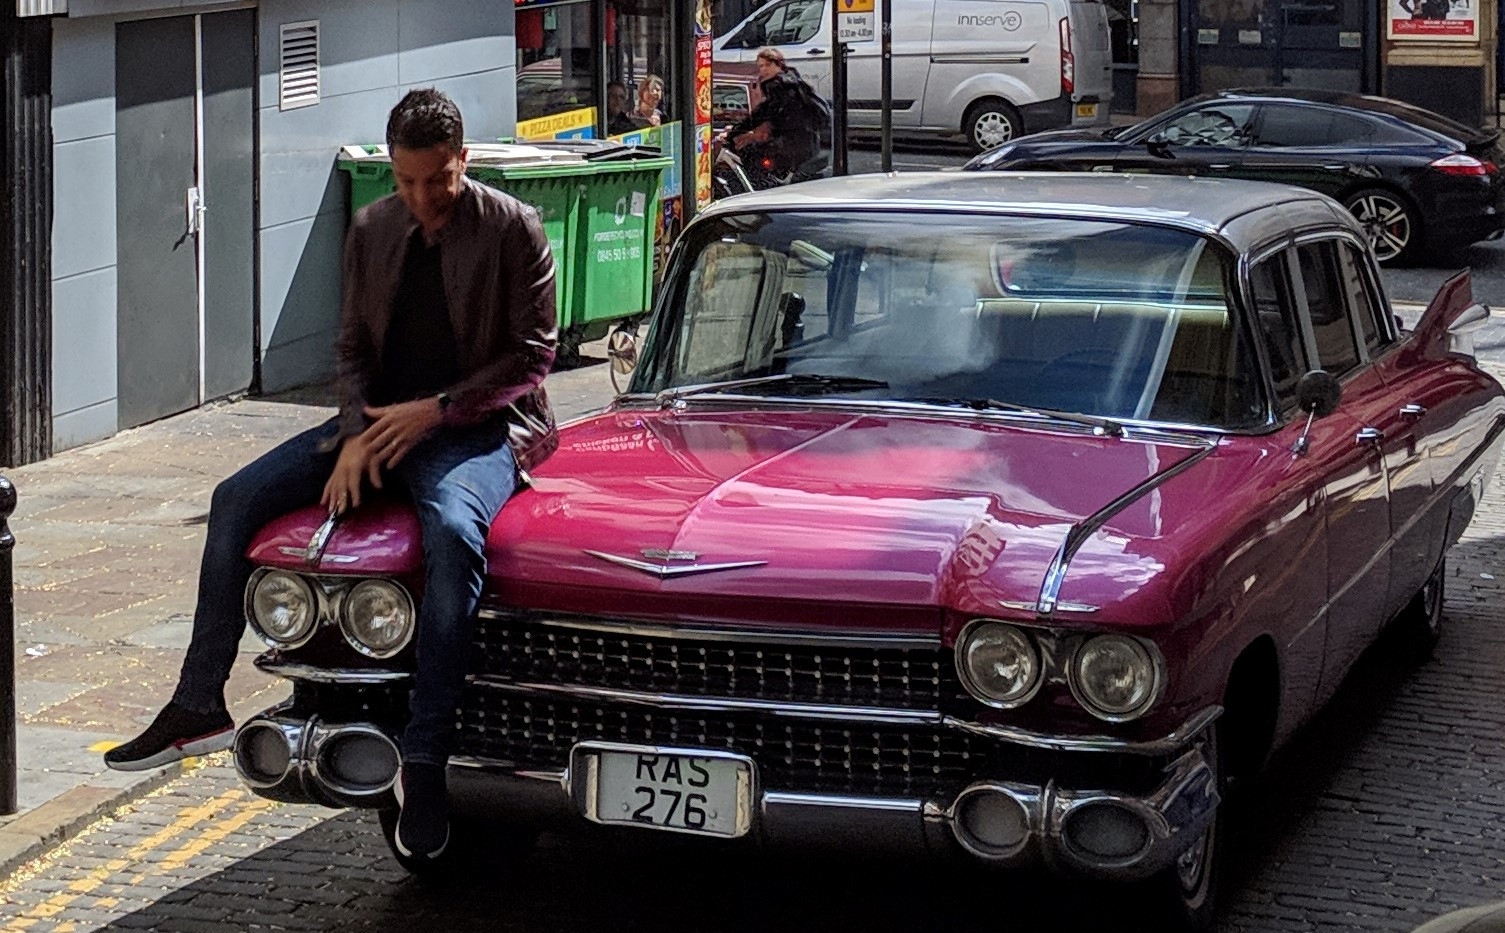 Peter Andre - The Grease Musical